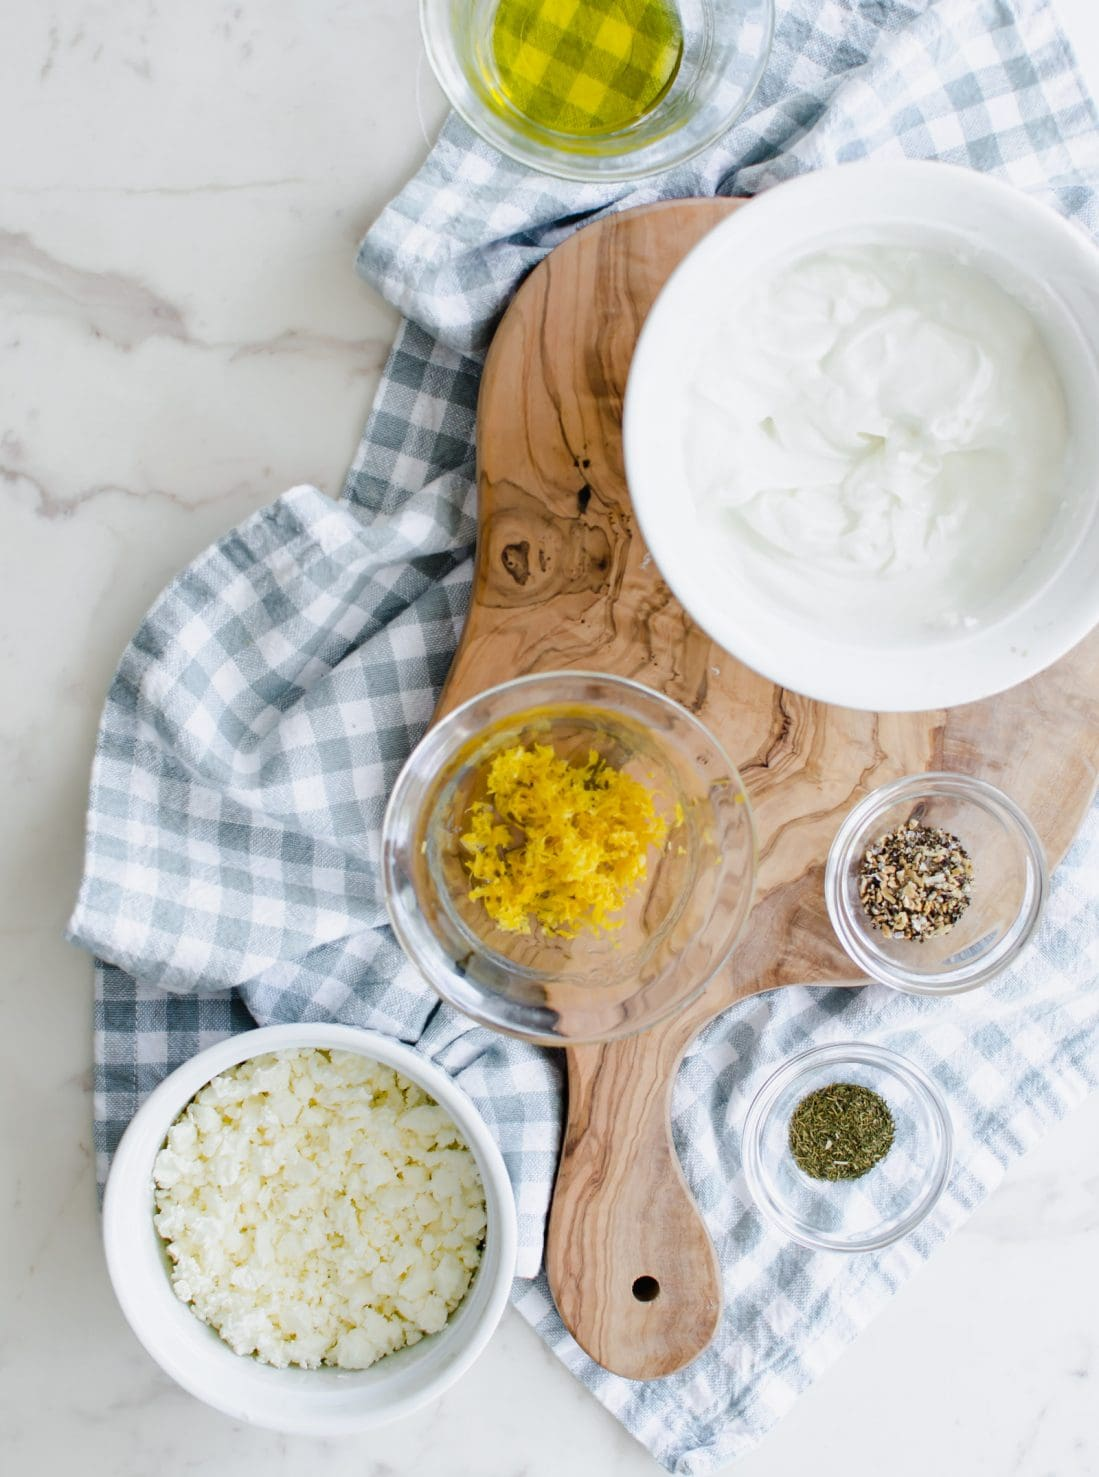 An overhead shot of bowls with ingredients for making a feta dipping sauce on a white marble counter top.